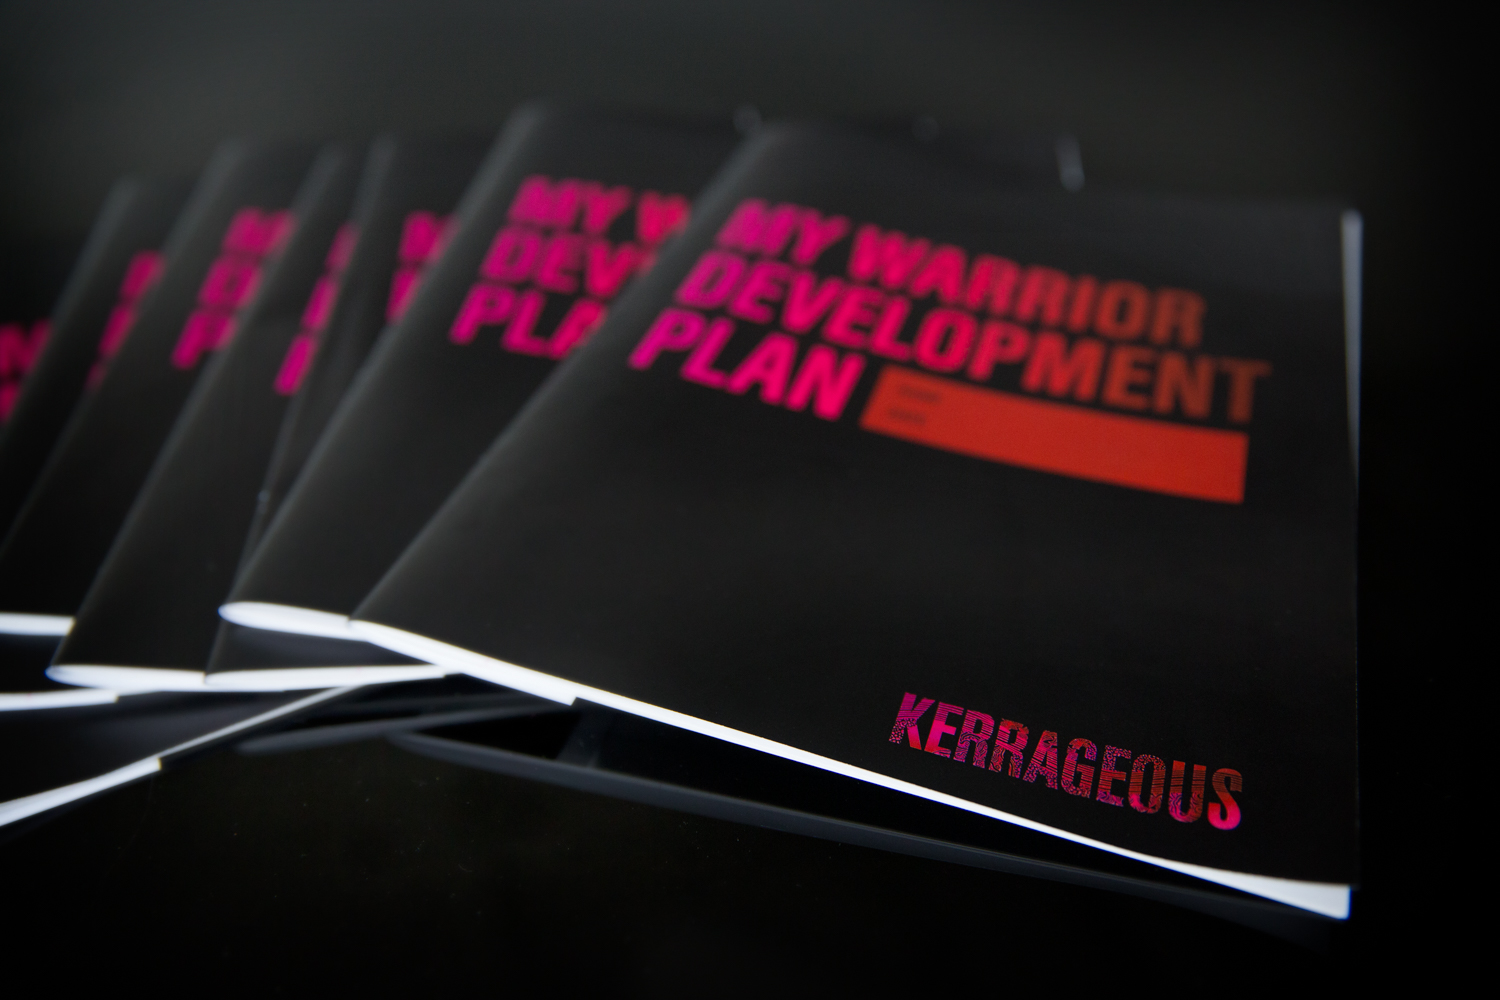 PLUS:Warrior Development Workbooks for up to 30 workshop participants - (a value of over $4,000.00)